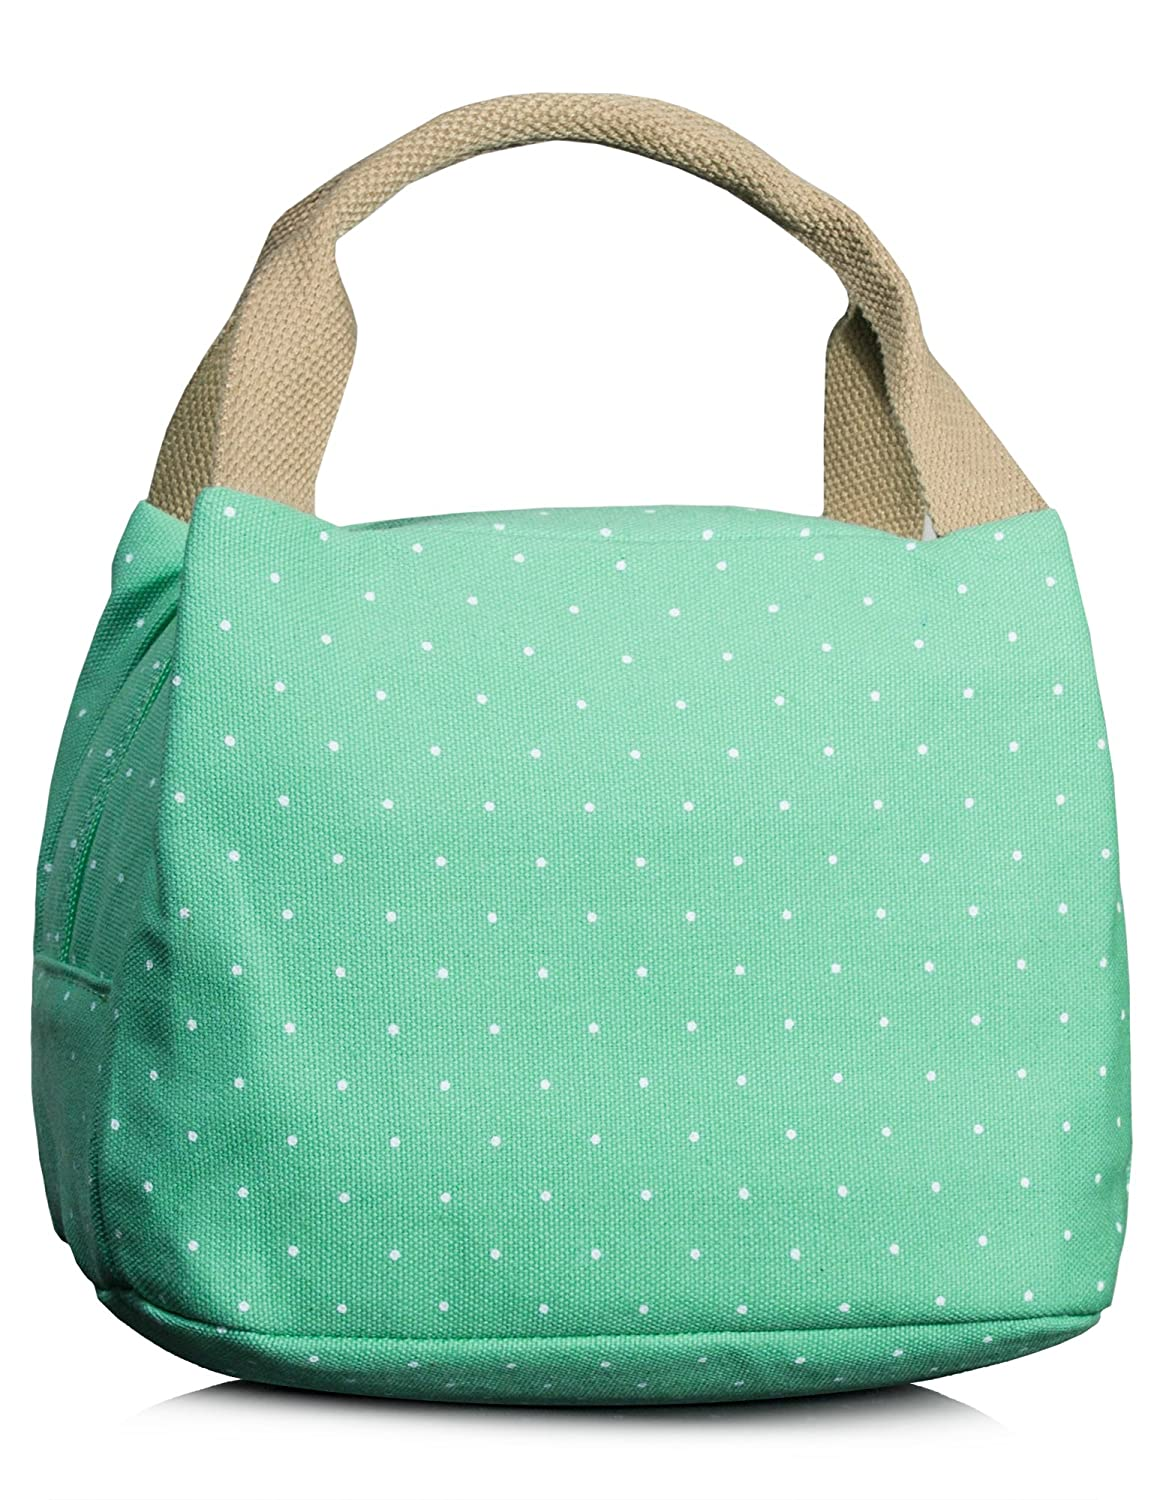 Lunch Bag for Girls, Cute Polka Dots insulated Lunch Box Picnic Tote Bag School Cooler Holder Black Fifth Season BP4725